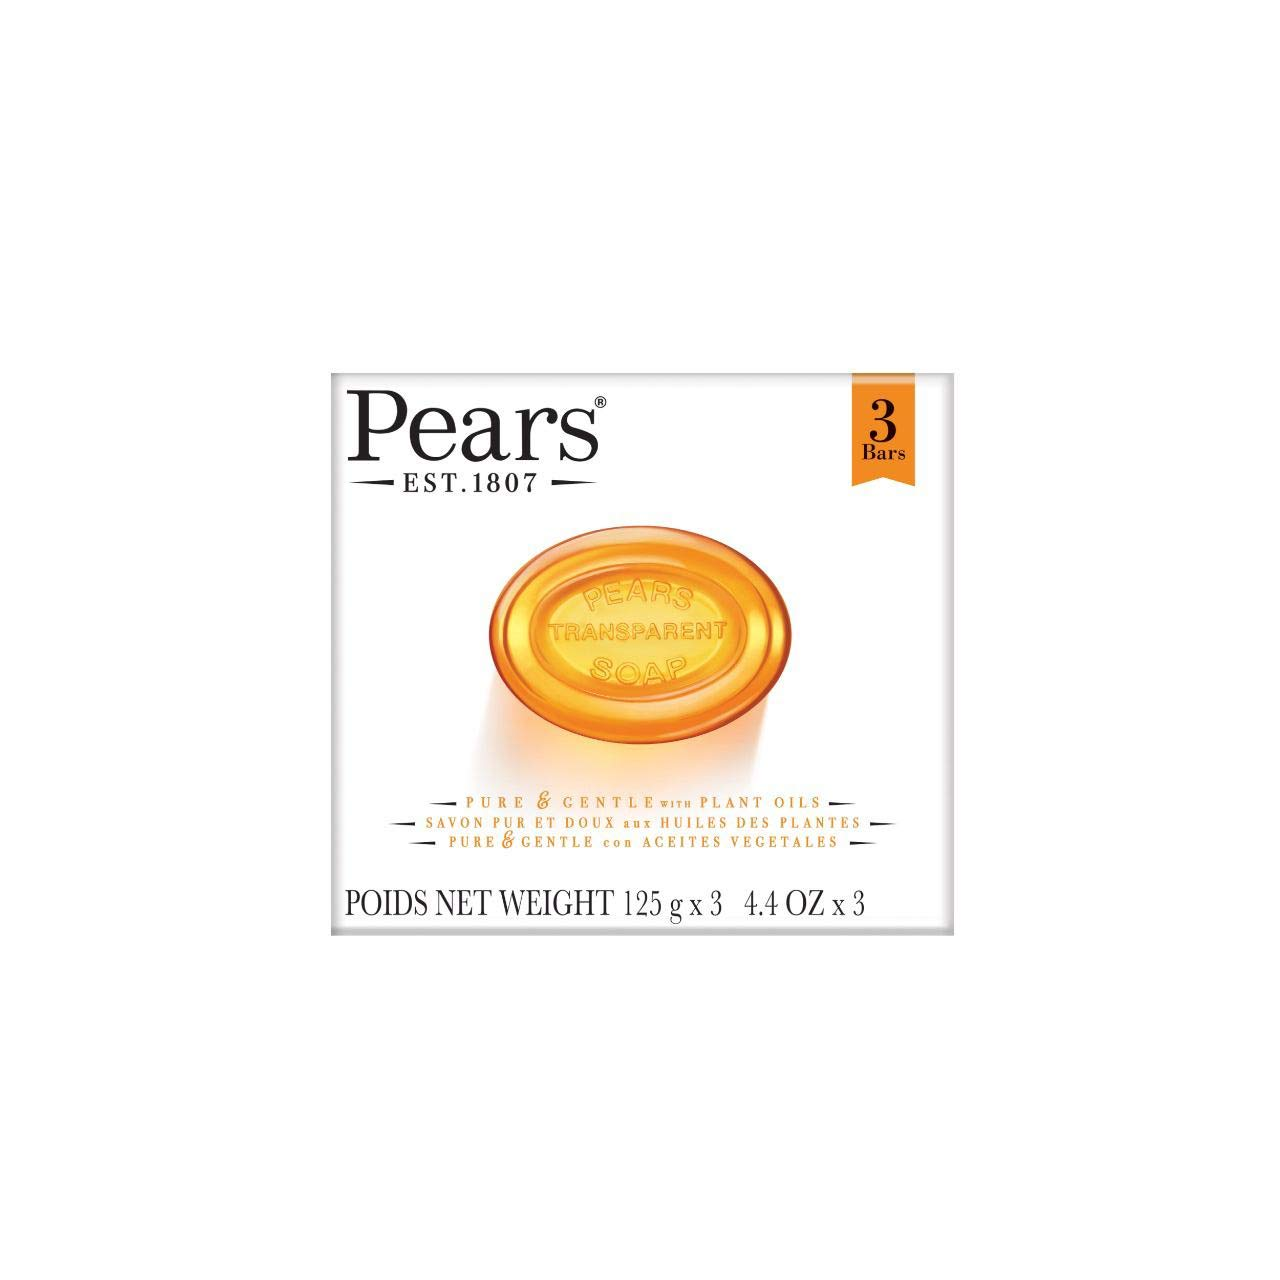 Pears Pure & Gentle Soap with Natural Oils, 3.5 oz bars, 3 ea